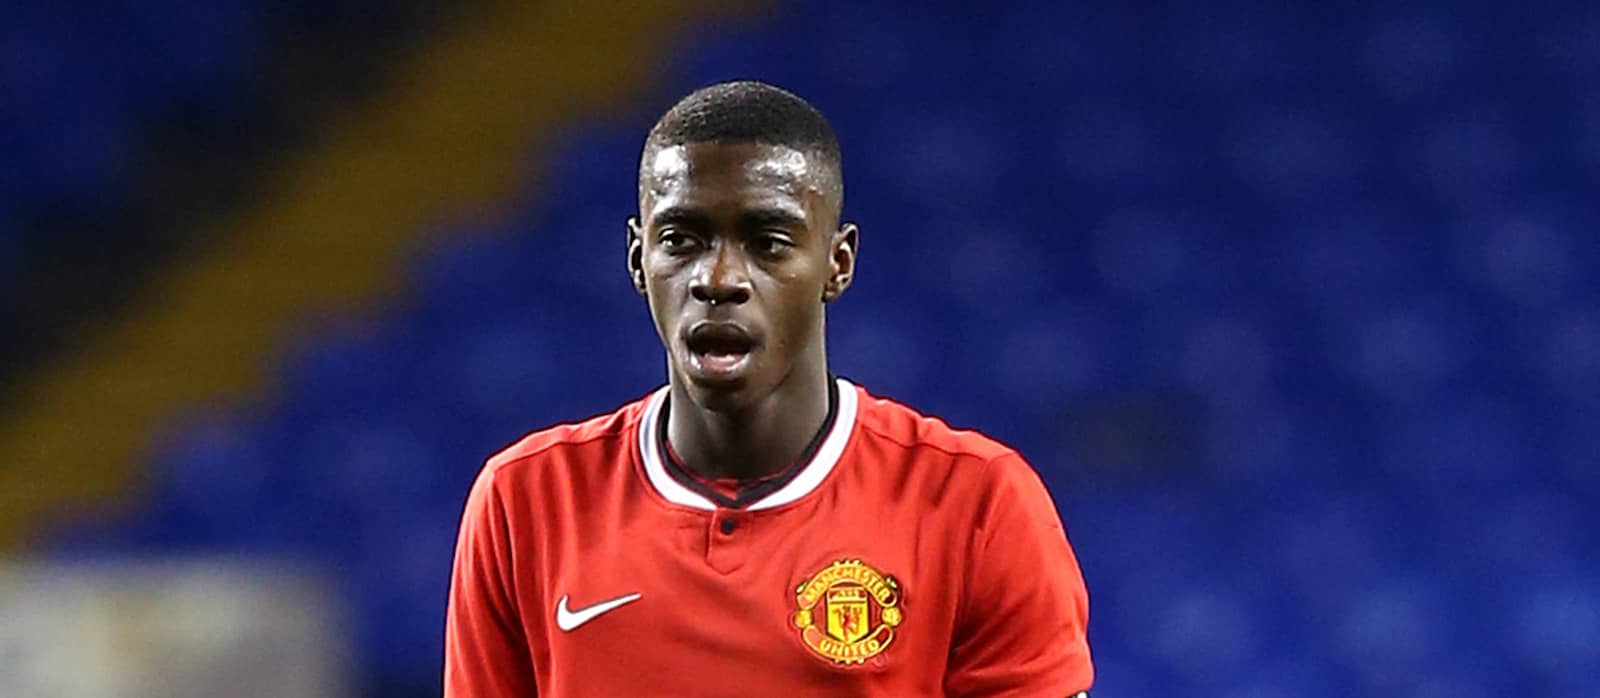 Jose Mourinho includes Axel Tuanzebe in training with Man United's first team